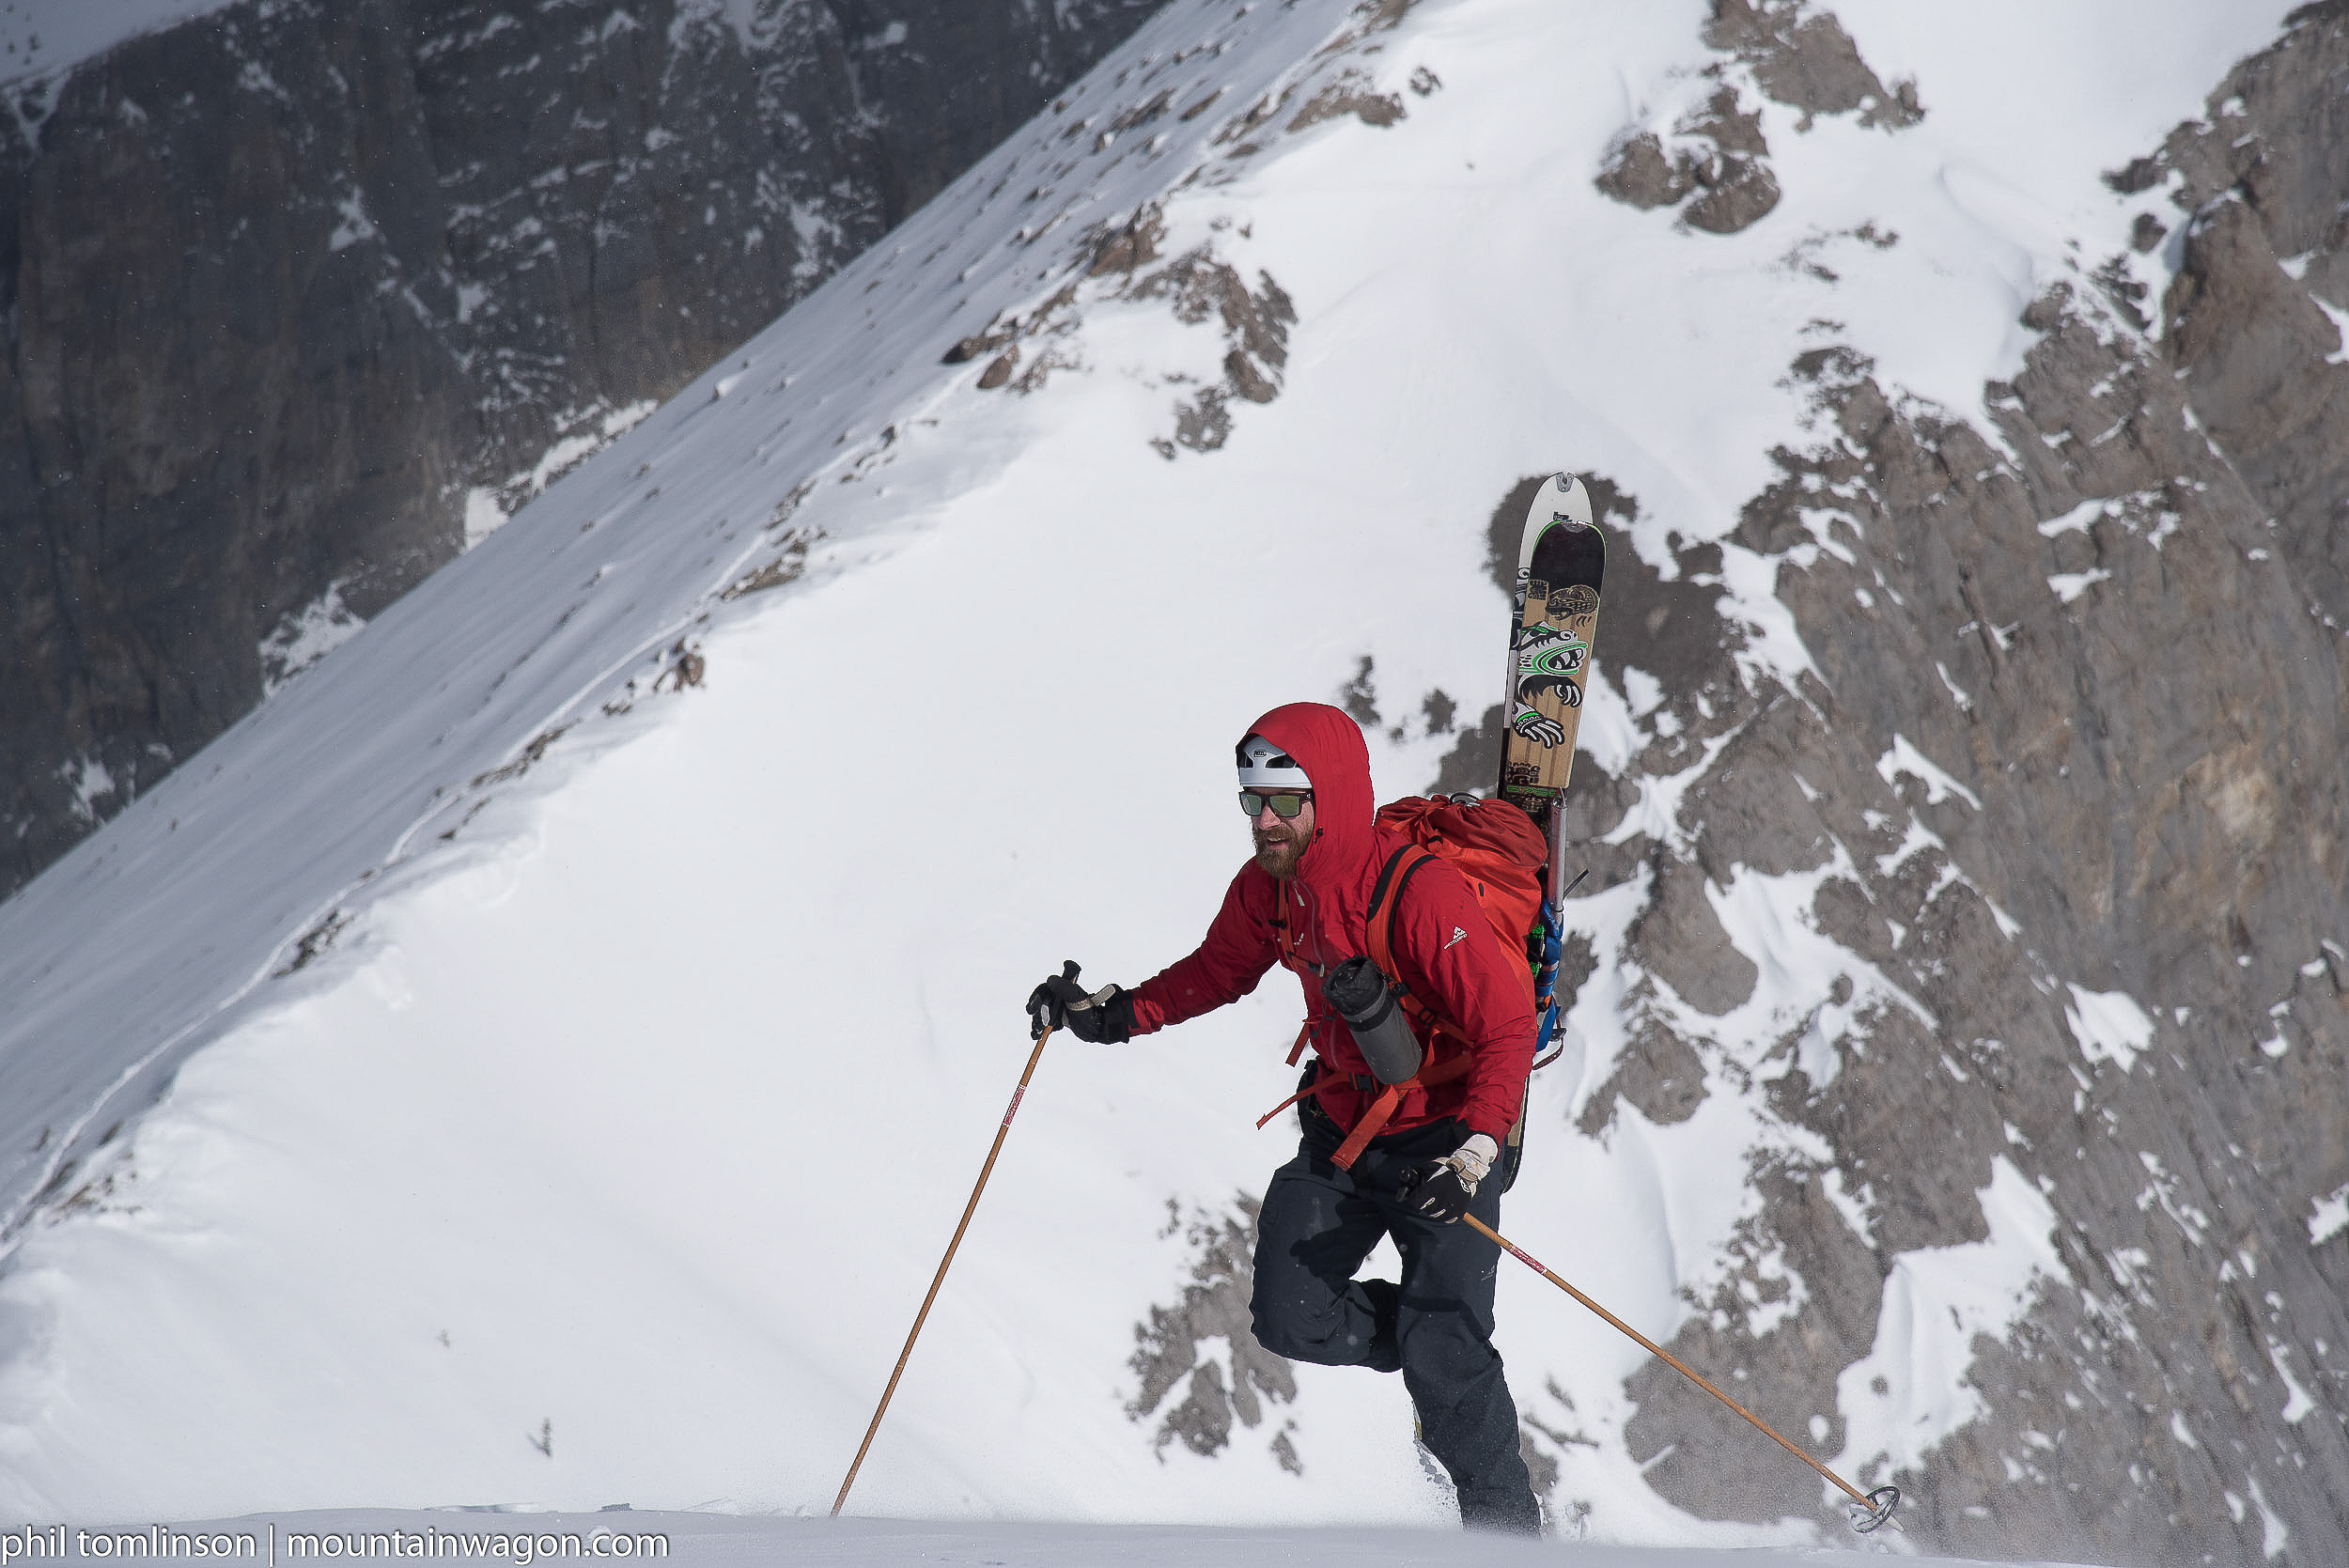 Skyler crushing it uphill - in this case he was bootpacking up hill in the  Westcomb Switch Hoody .